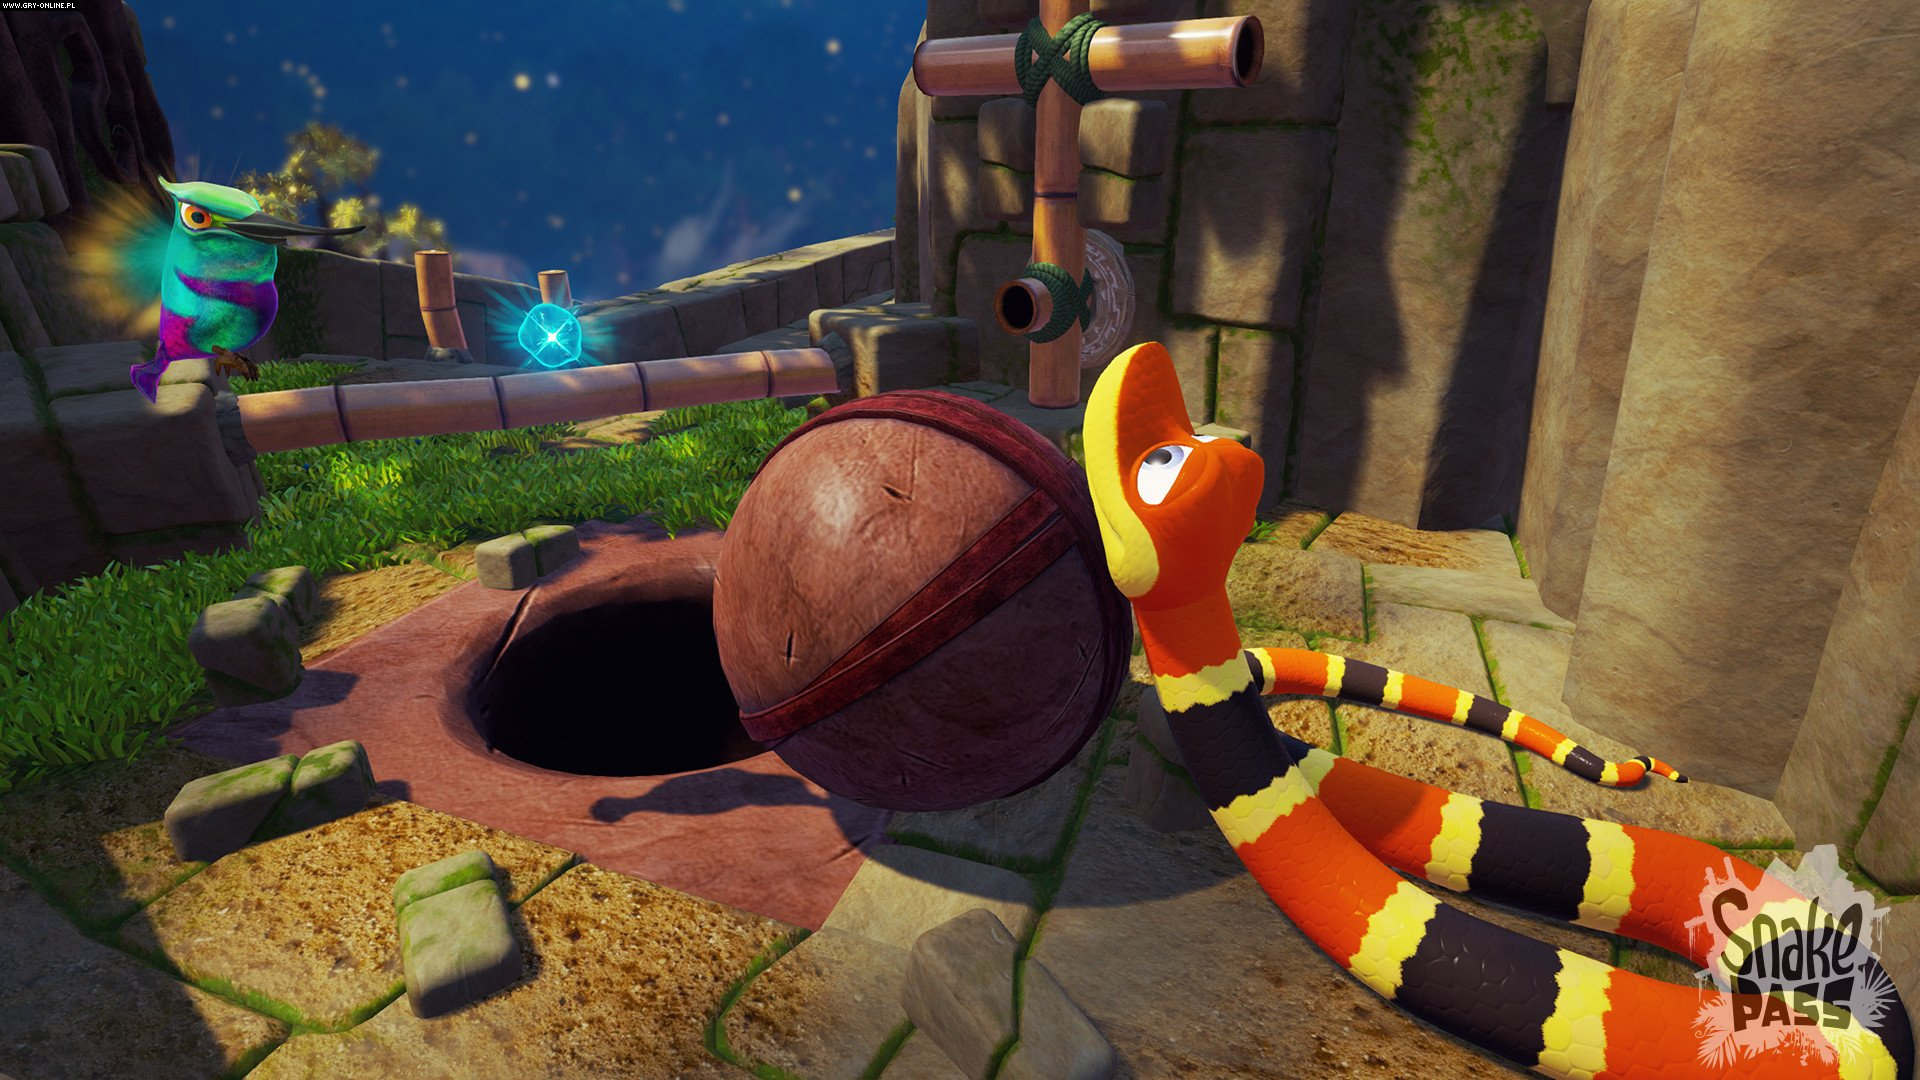 Snake Pass PC, PS4, XONE, Switch Gry Screen 3/5, Sumo Digital